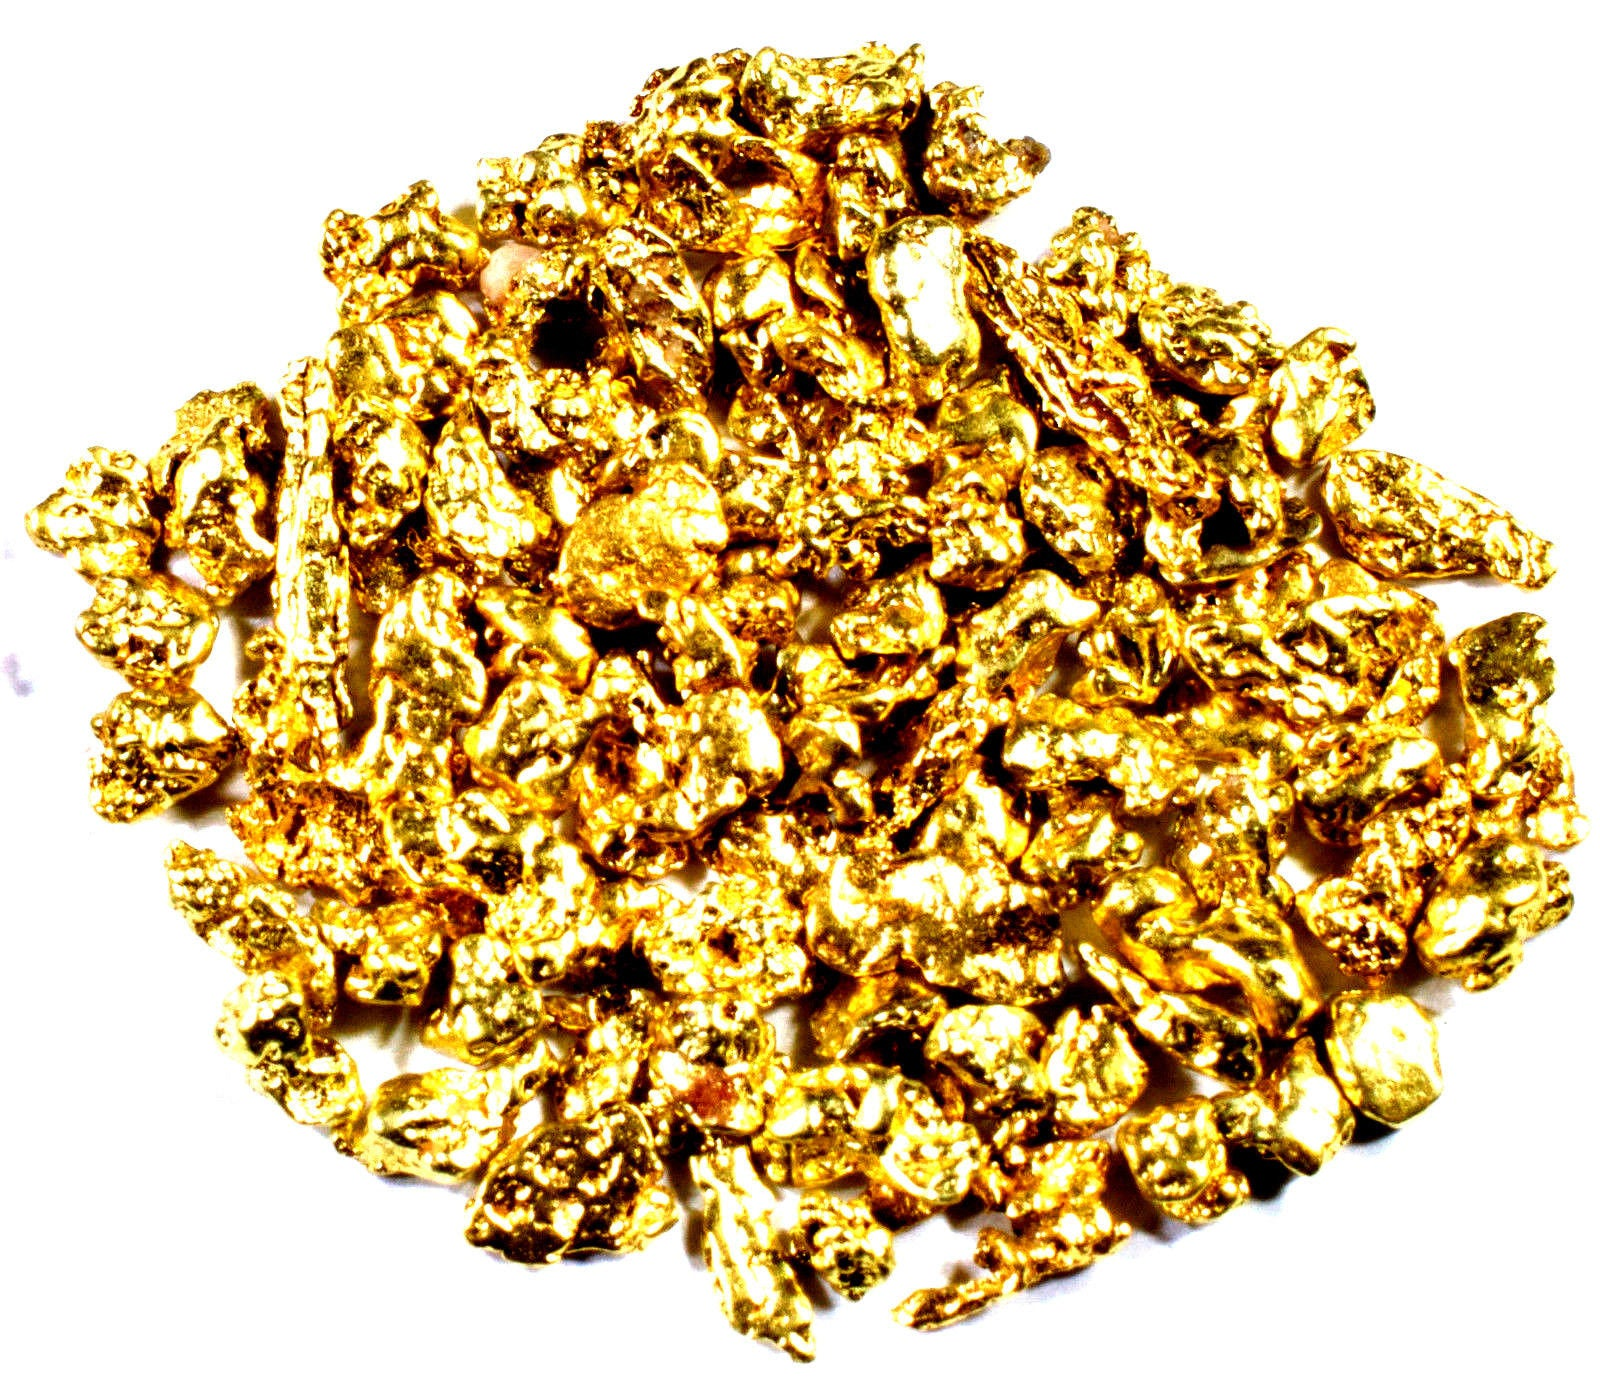 2.000 GRAMS ALASKAN YUKON BC NATURAL PURE GOLD NUGGETS #14 MESH - Liquidbullion